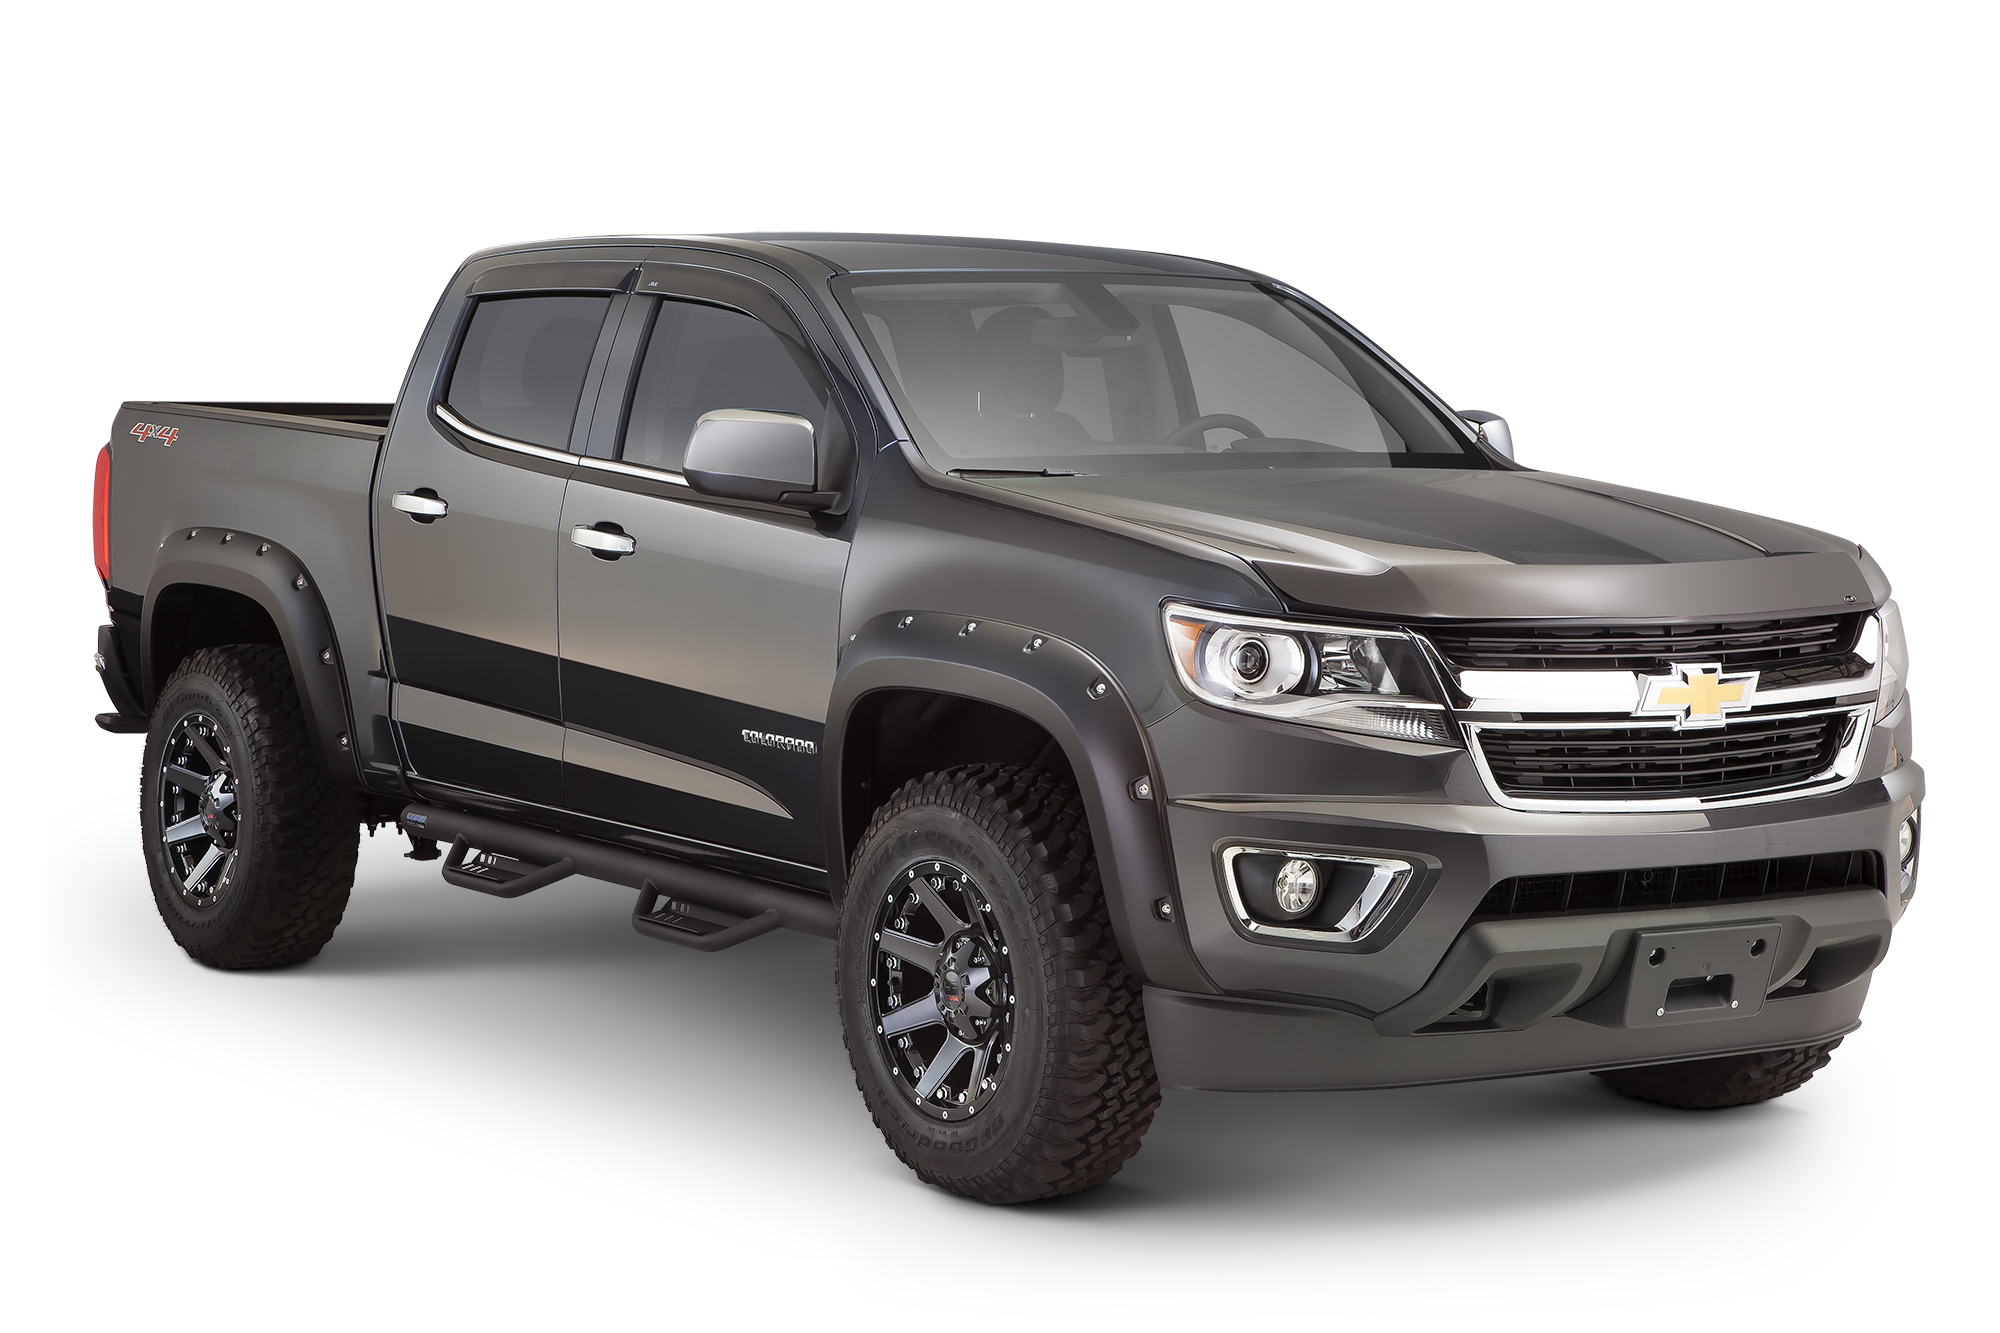 2015 Chevy Colorado Bushwacker | Autos Post